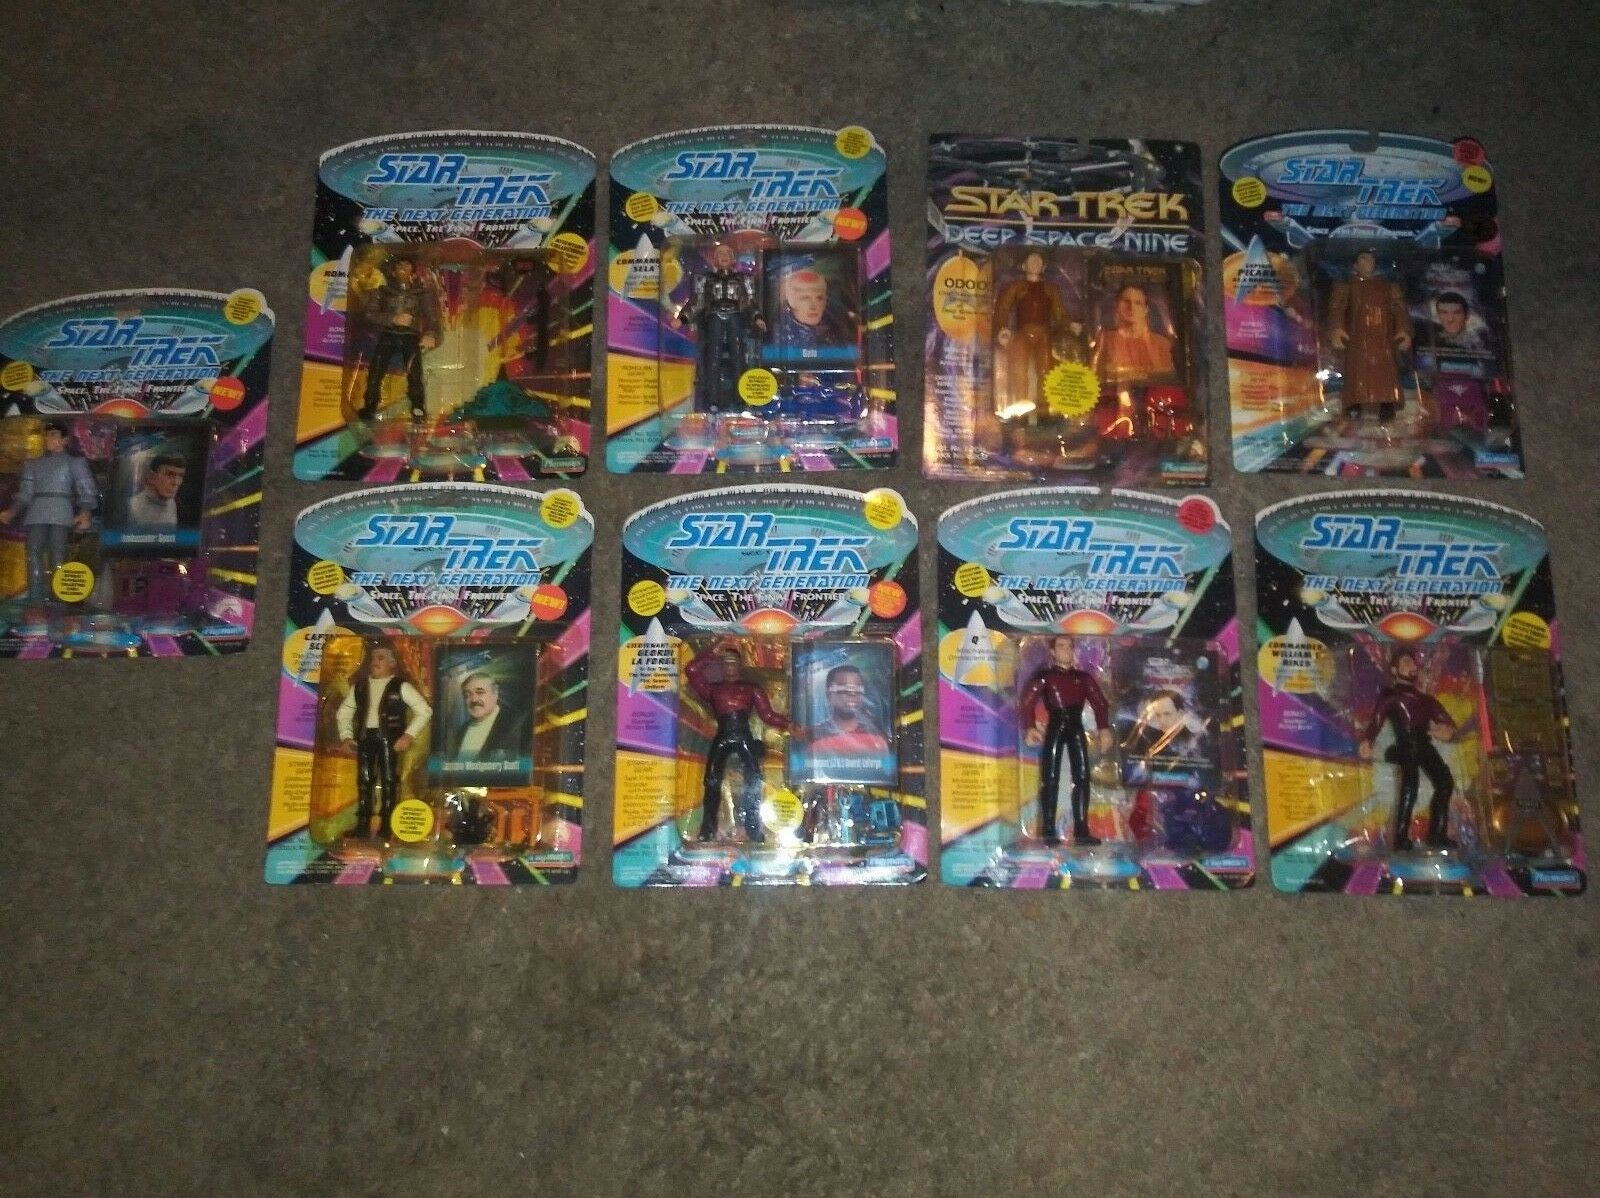 LOT OF 49 STAR TREK ACTION FIGURES, 1990'S PLAYMATES, NEW NEW NEW ec7873